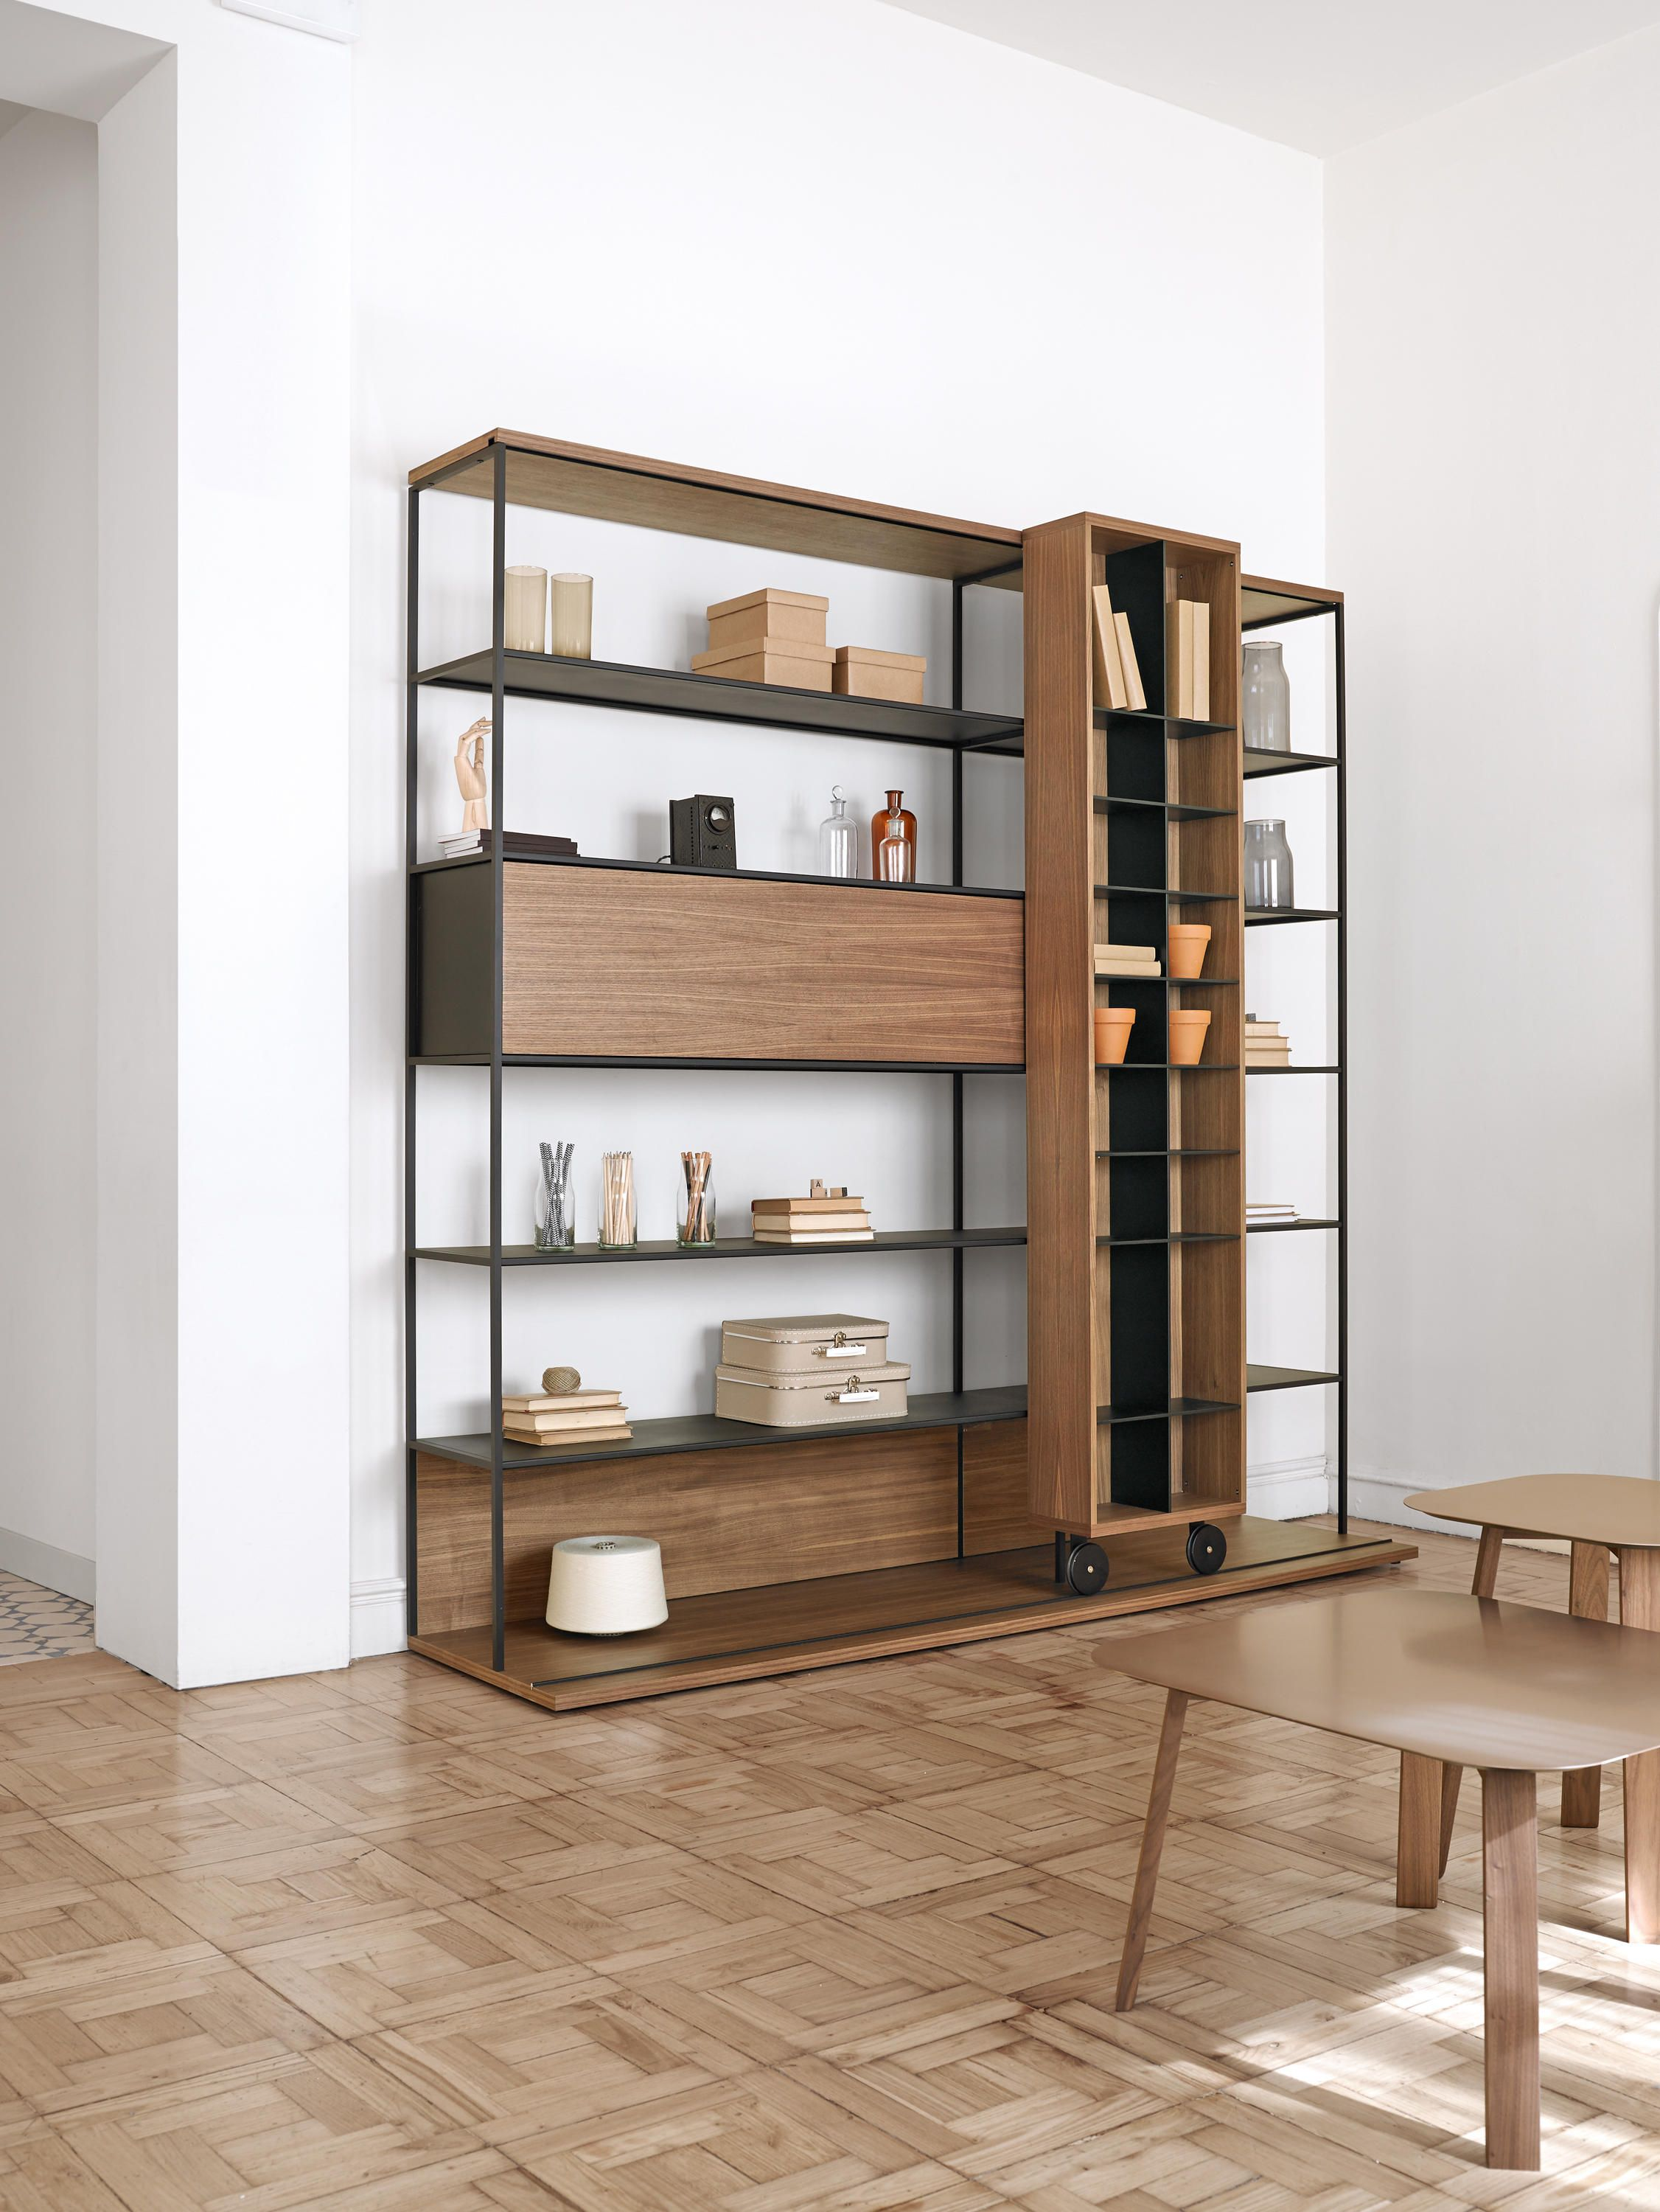 LITERATURA OPEN   Designer Shelving From Punt Mobles ✓ All Information ✓  High Resolution Images ✓ CADs ✓ Catalogues ✓ Contact Information ✓.